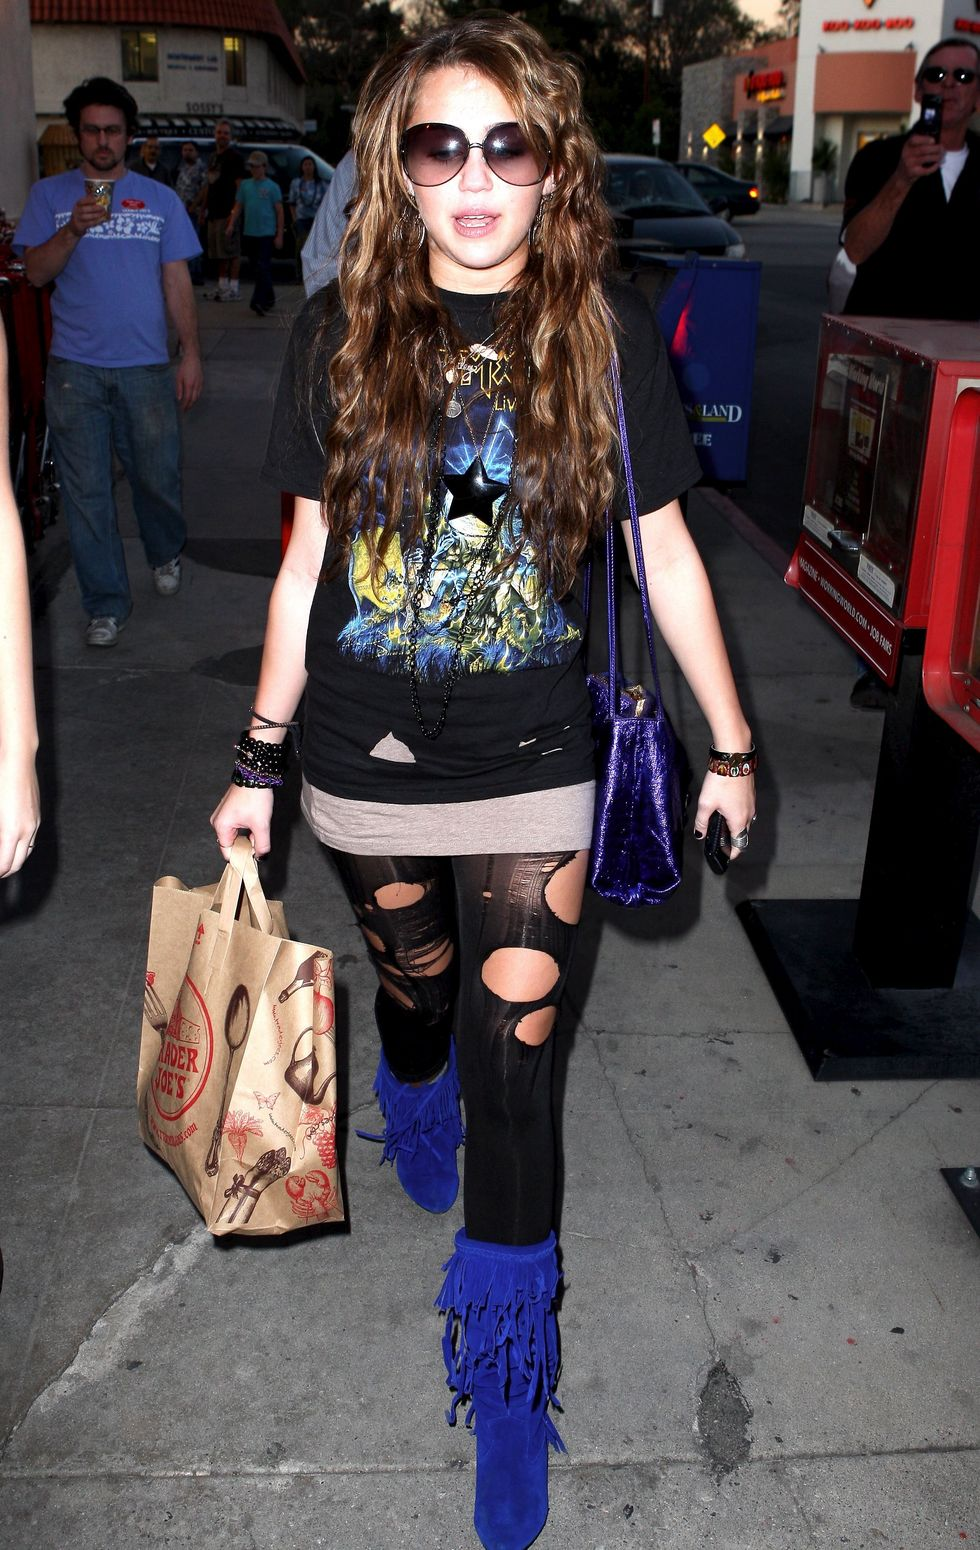 miley-cyrus-ripped-leggings-candids-in-hollywood-07